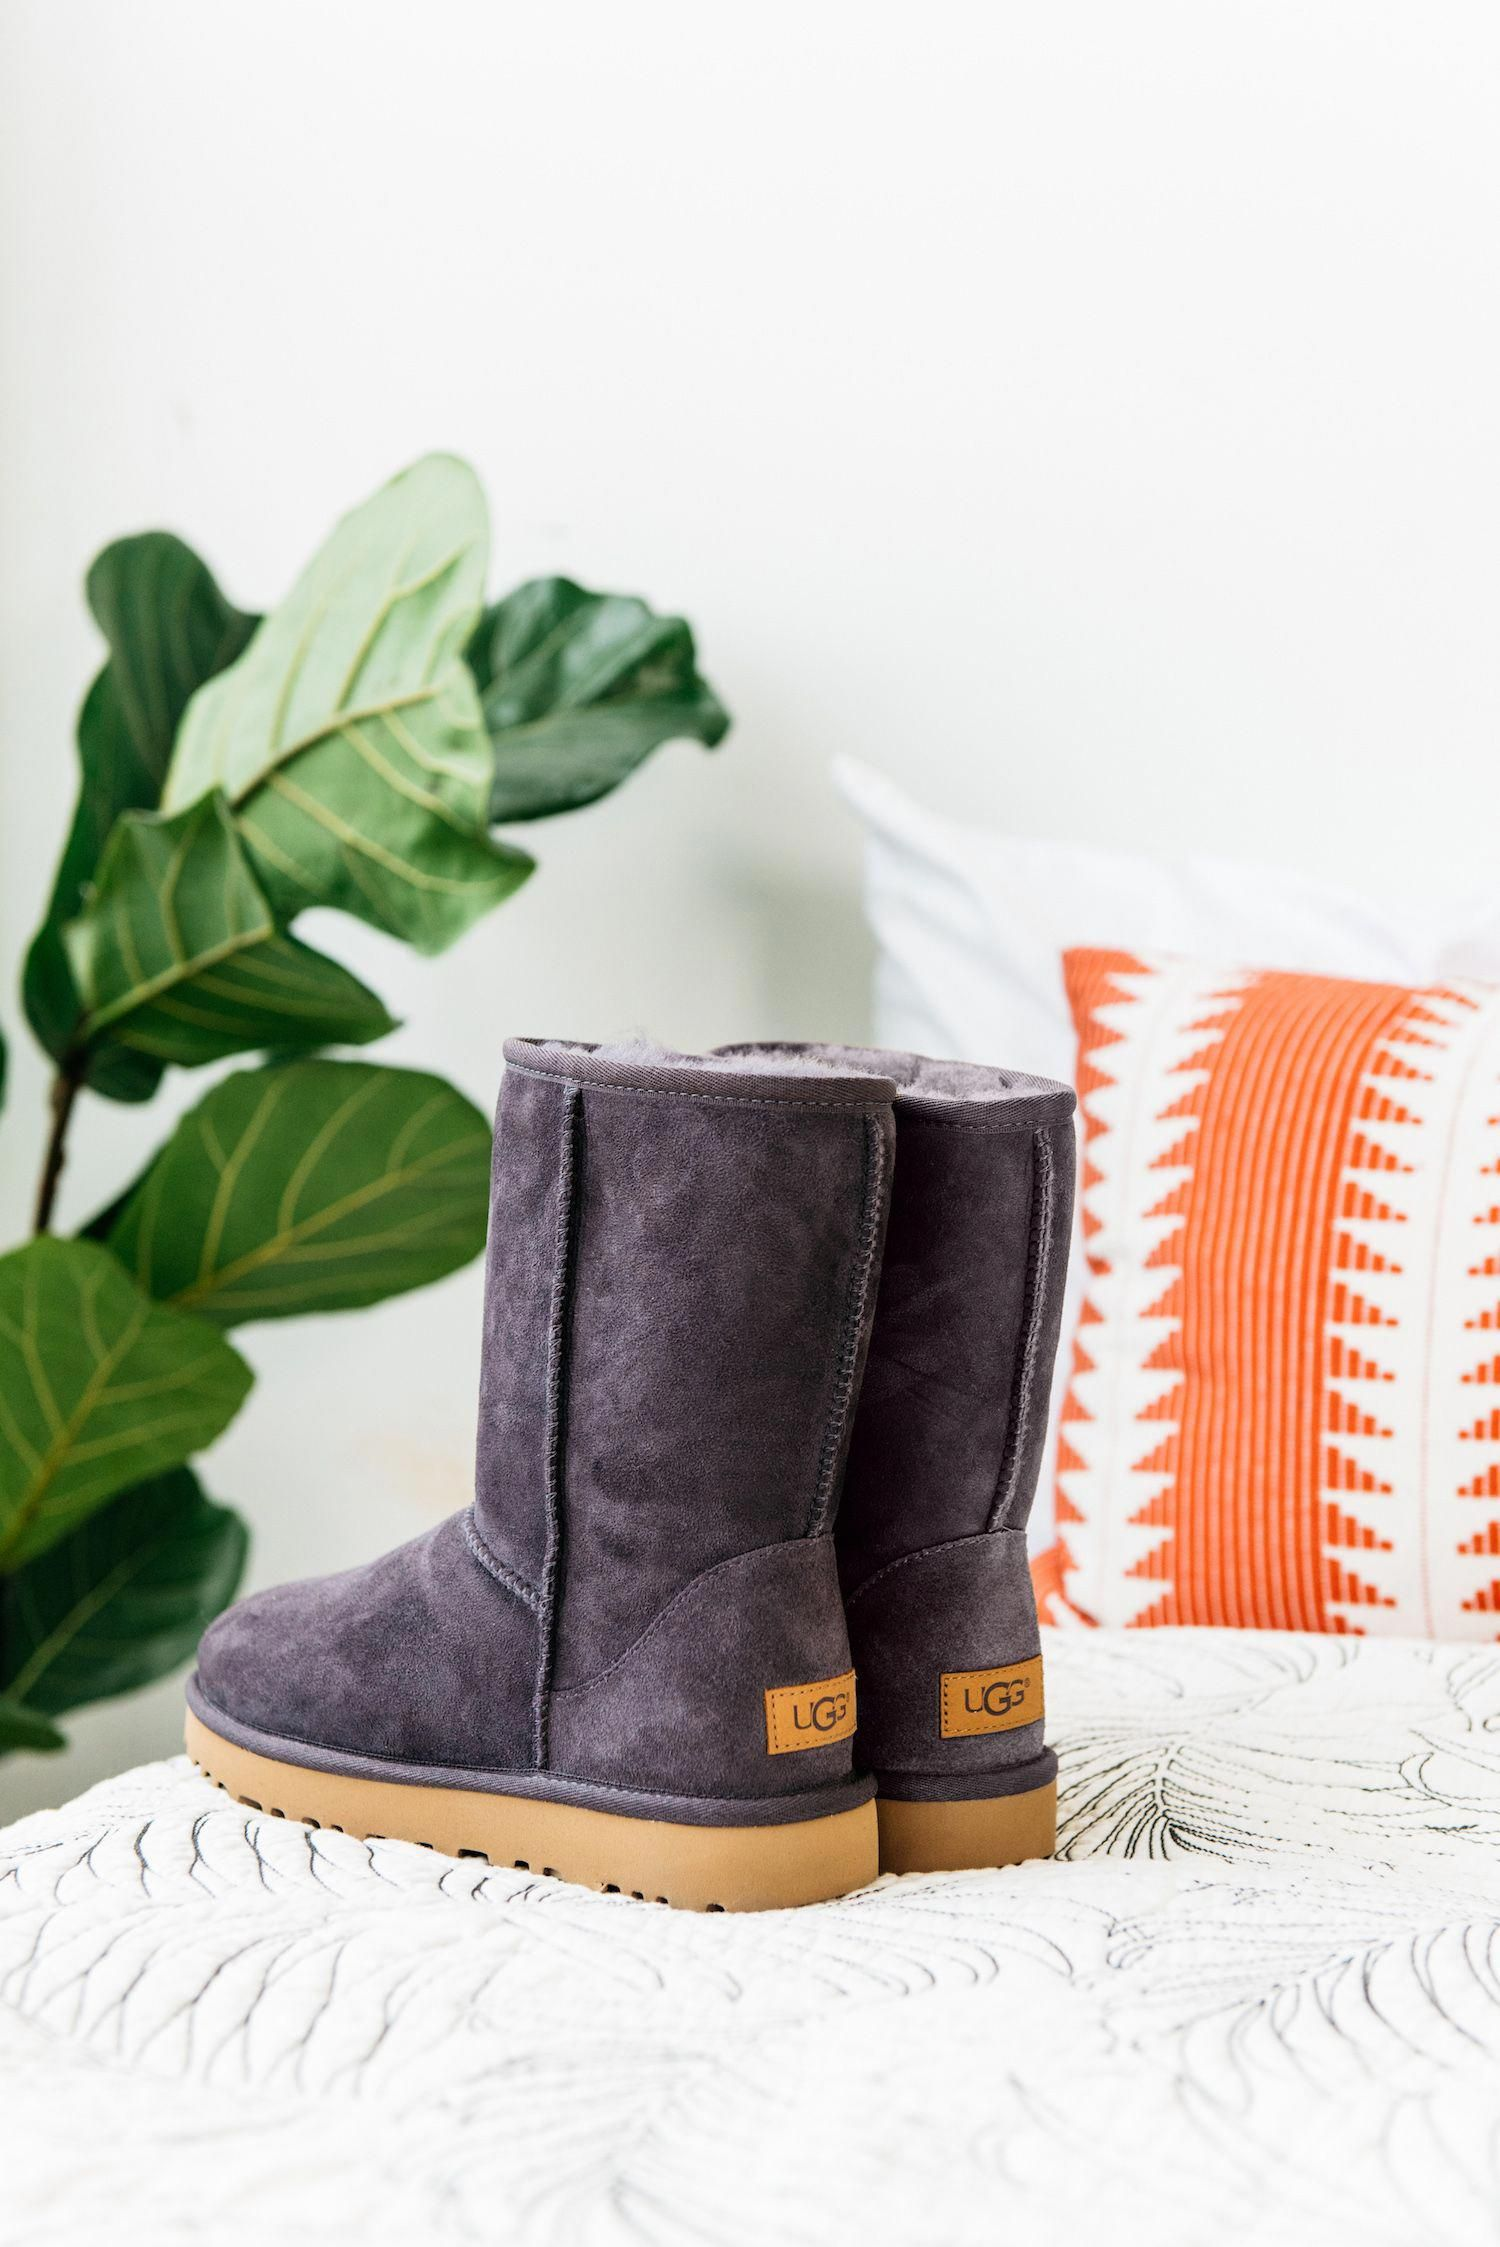 All About The New Seasonal Colors Uggboots Boots Classic Ugg Boots Ugg Boots